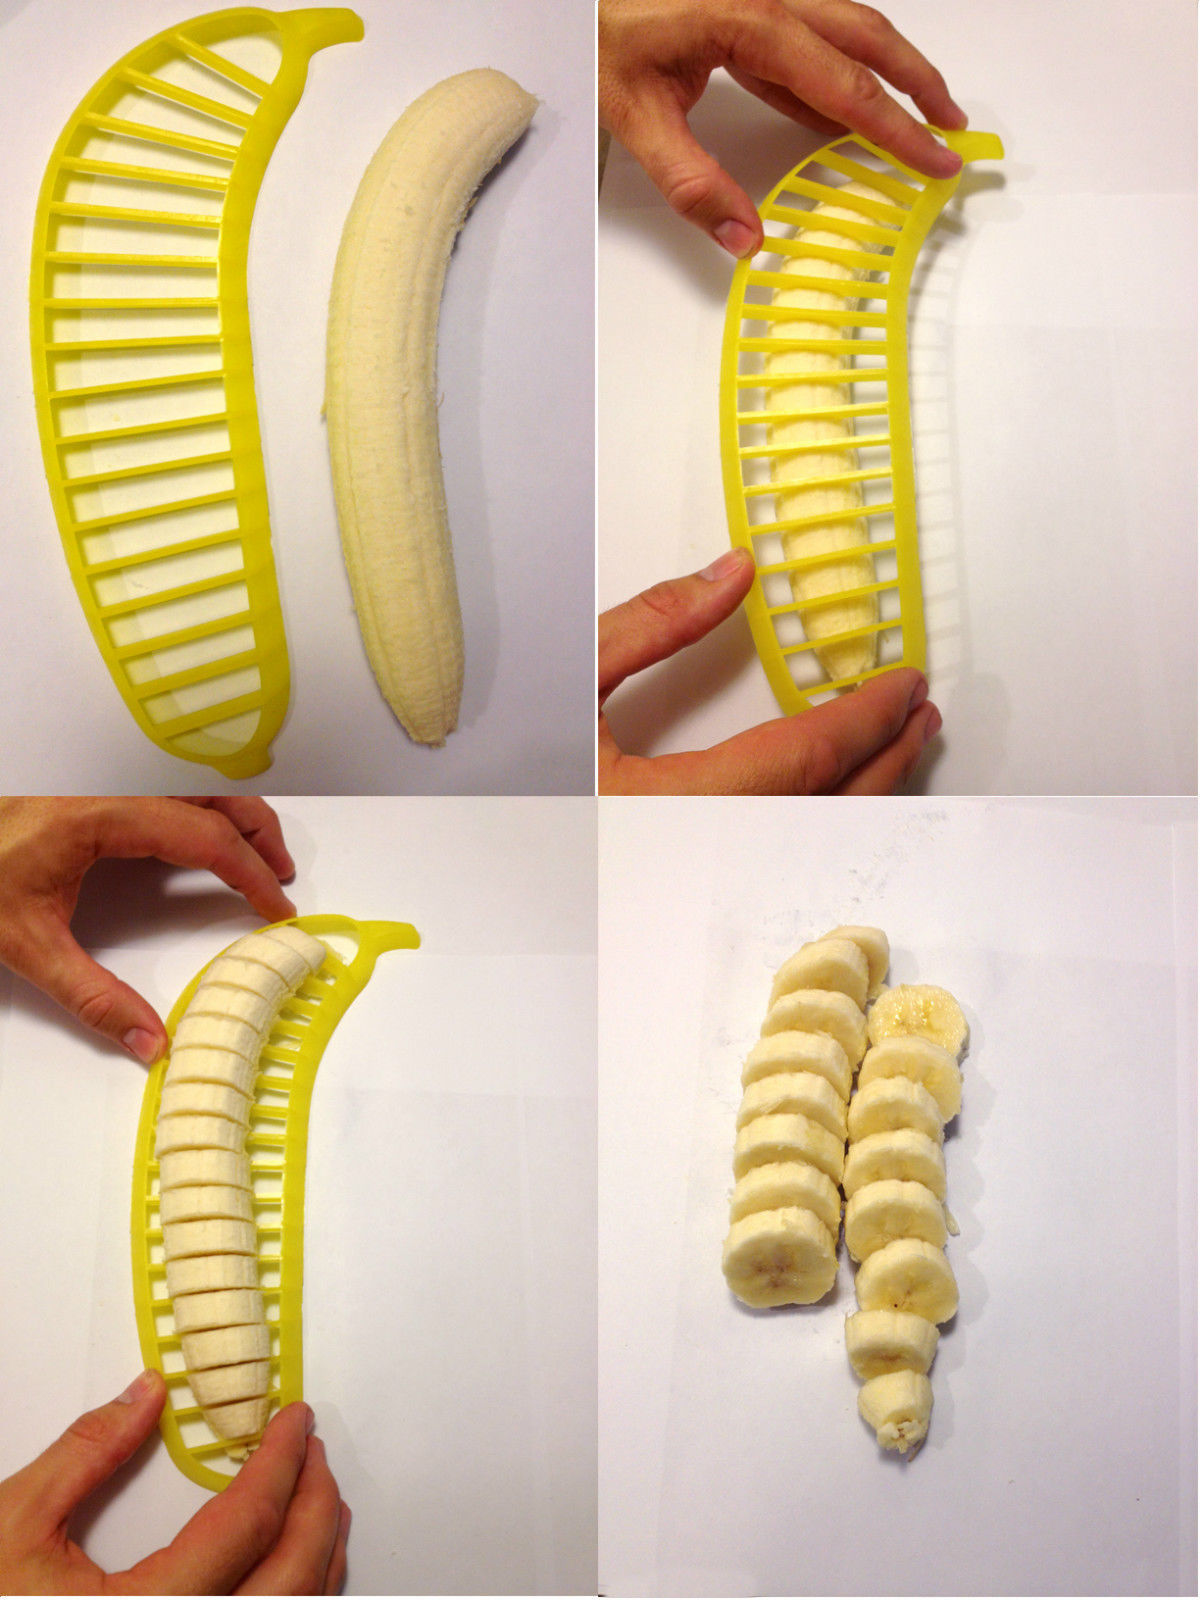 2 Banana Slicers ** USA Seller! Cutter Chopper Tool Gadget make chips instantly!